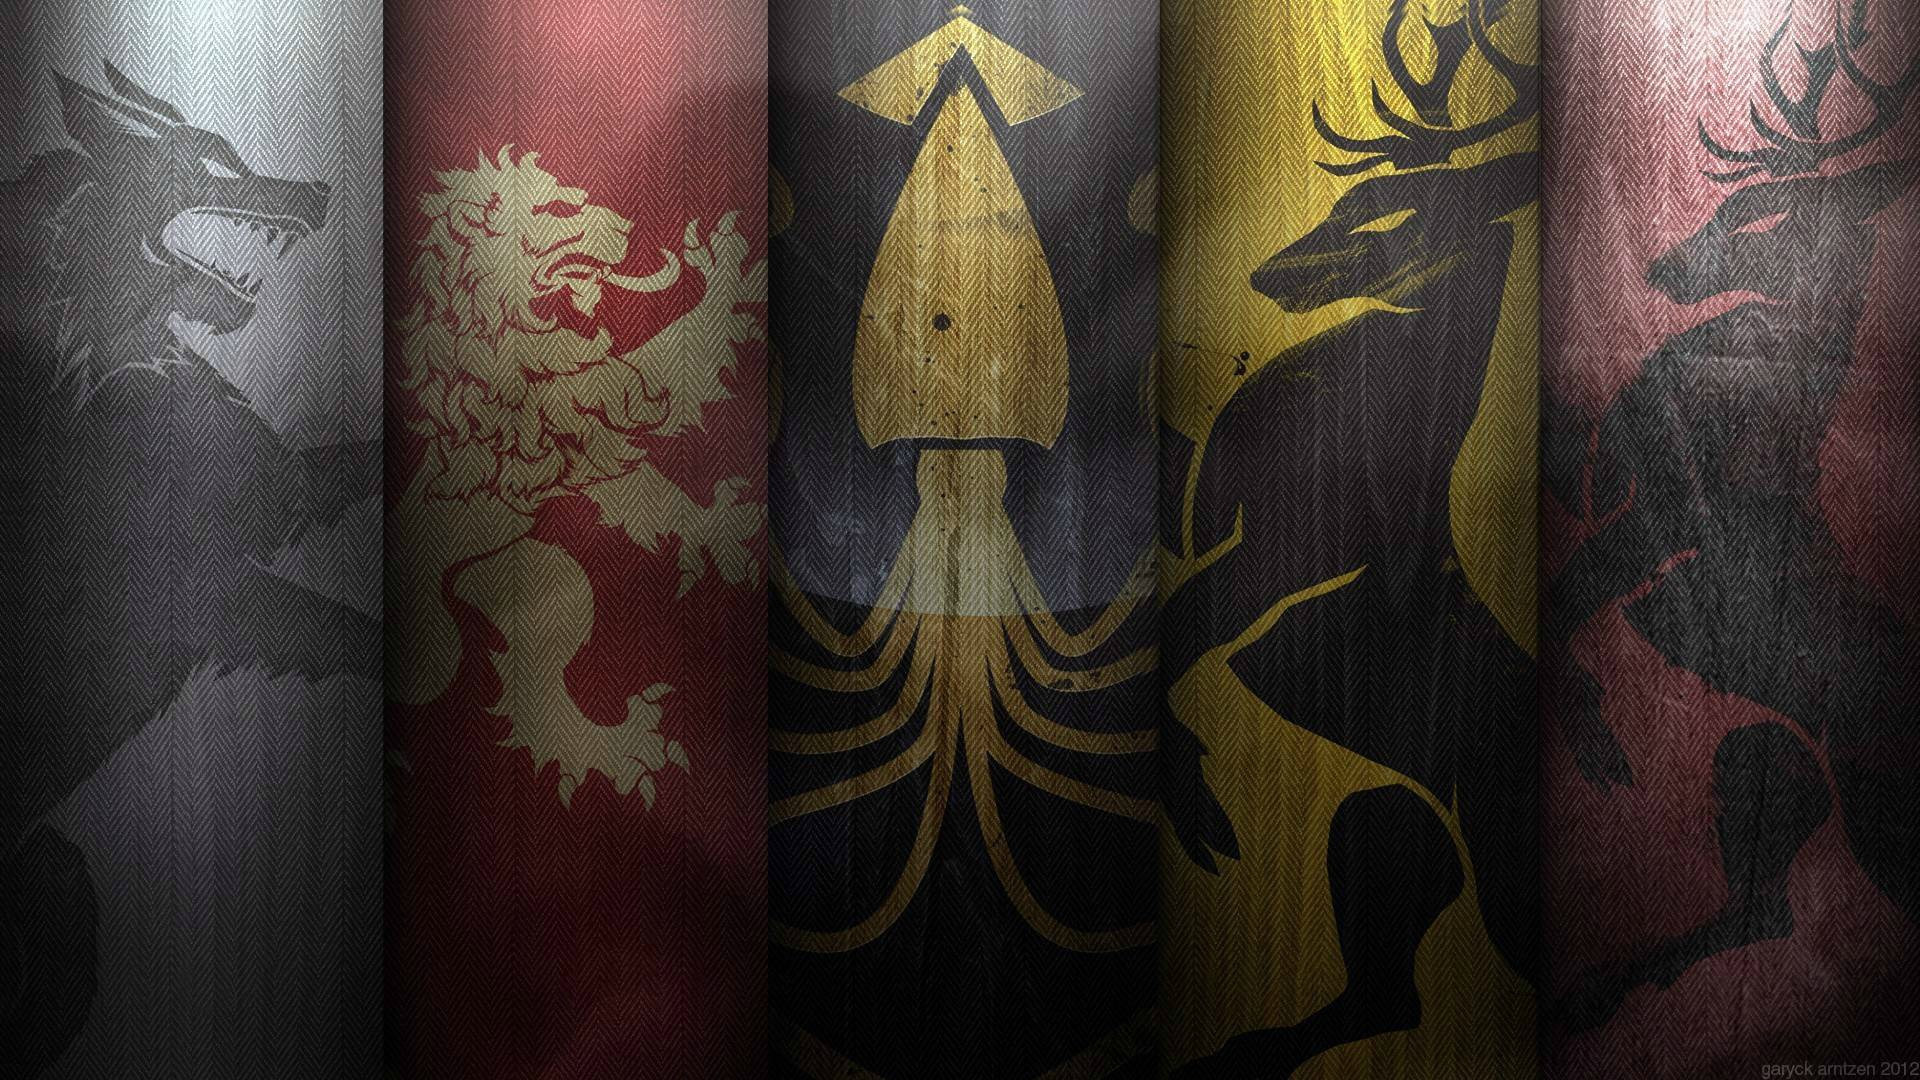 Game Of Thrones Wallpapers Hd Megapost 1920x1080